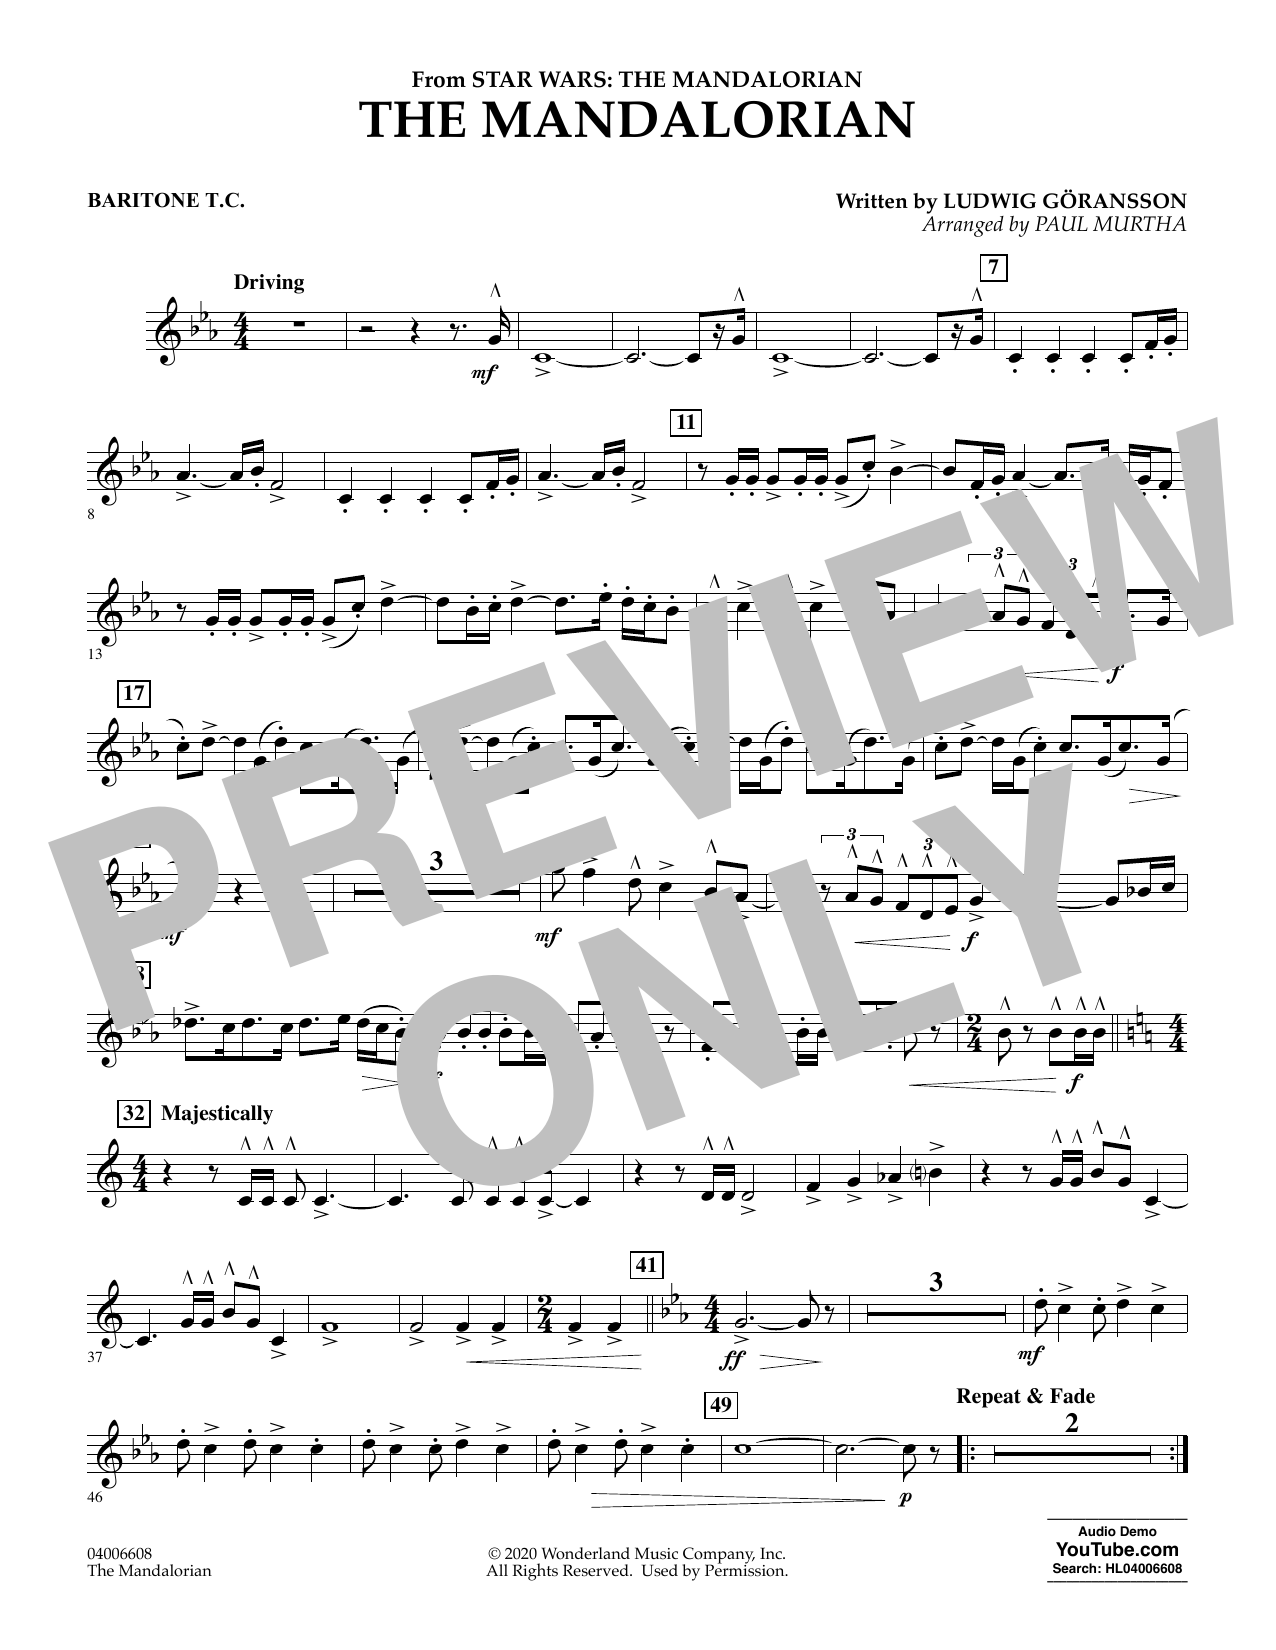 Ludwig Goransson The Mandalorian (from Star Wars: The Mandalorian) (arr. Paul Murtha) - Baritone T.C. sheet music notes and chords. Download Printable PDF.